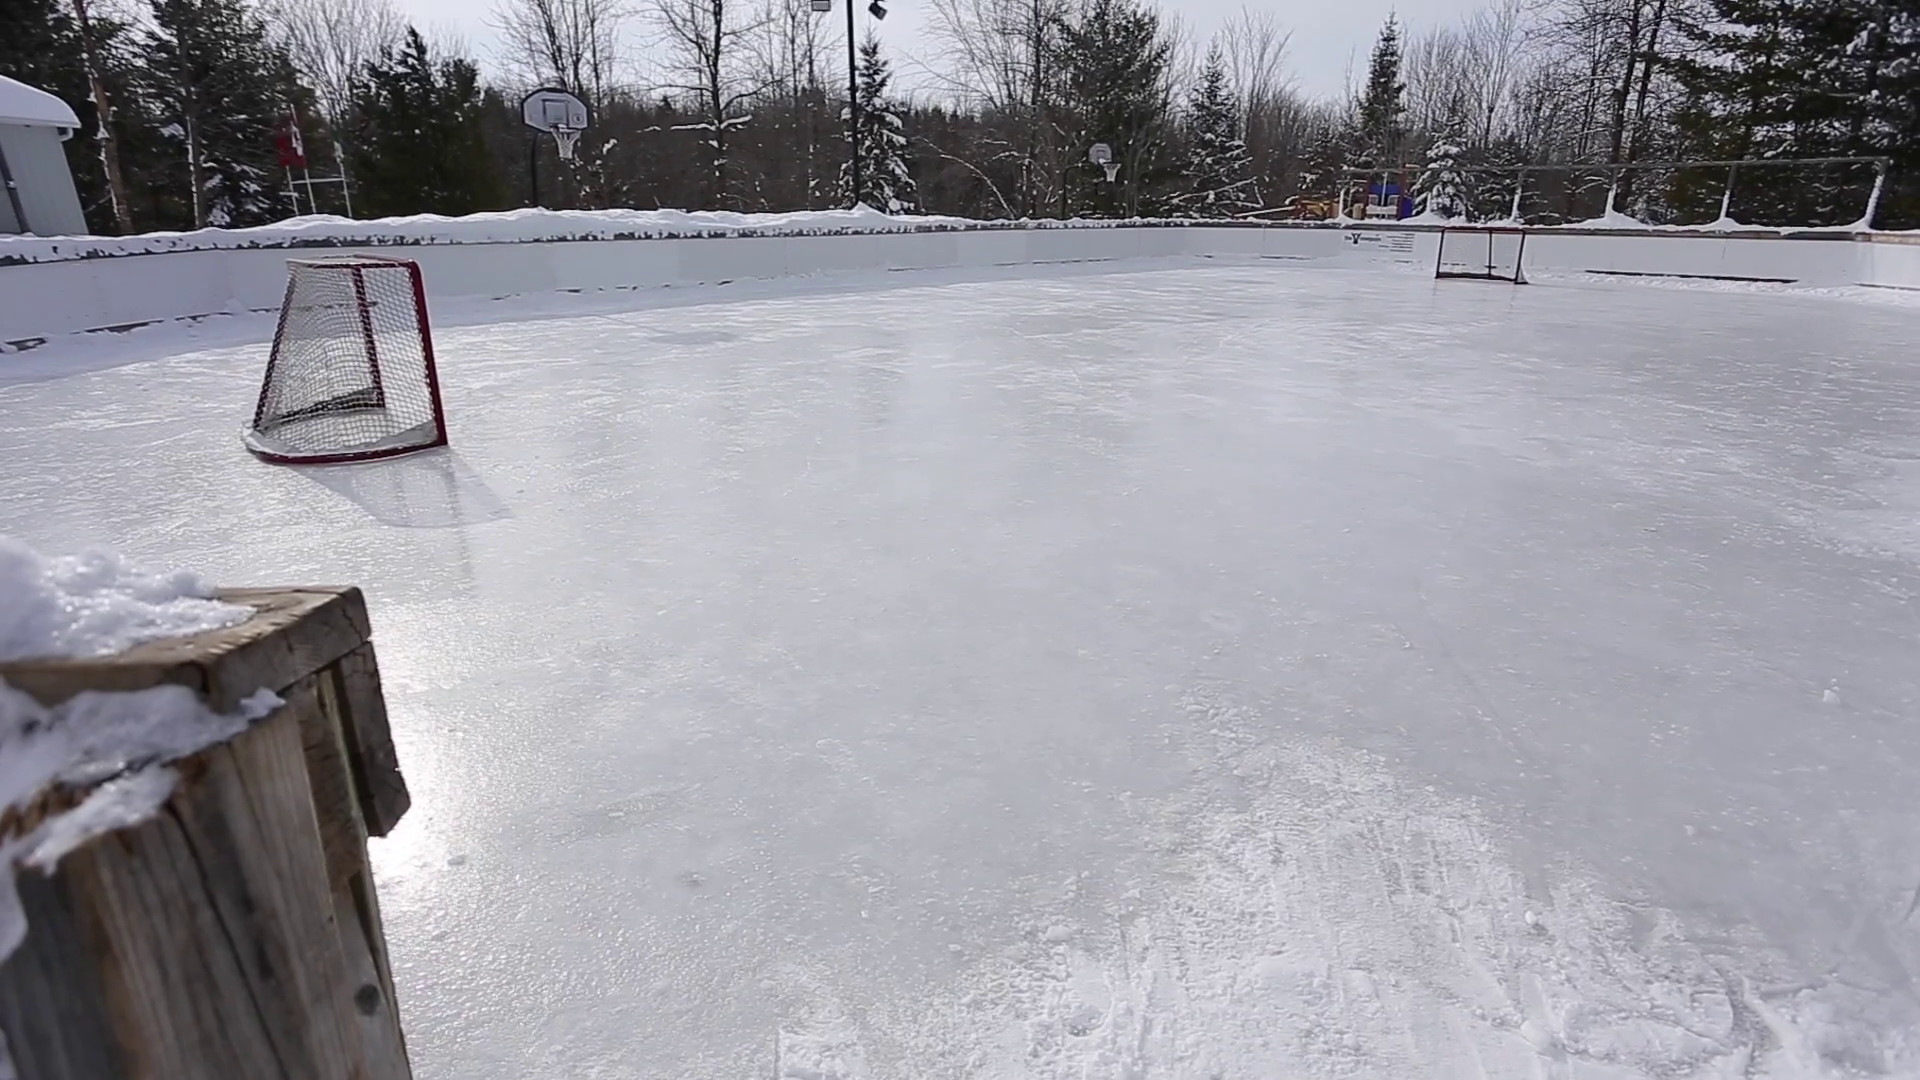 outdoor hockey rink with snowy forest background upward tilt reveal Stock  Video Footage – VideoBlocks